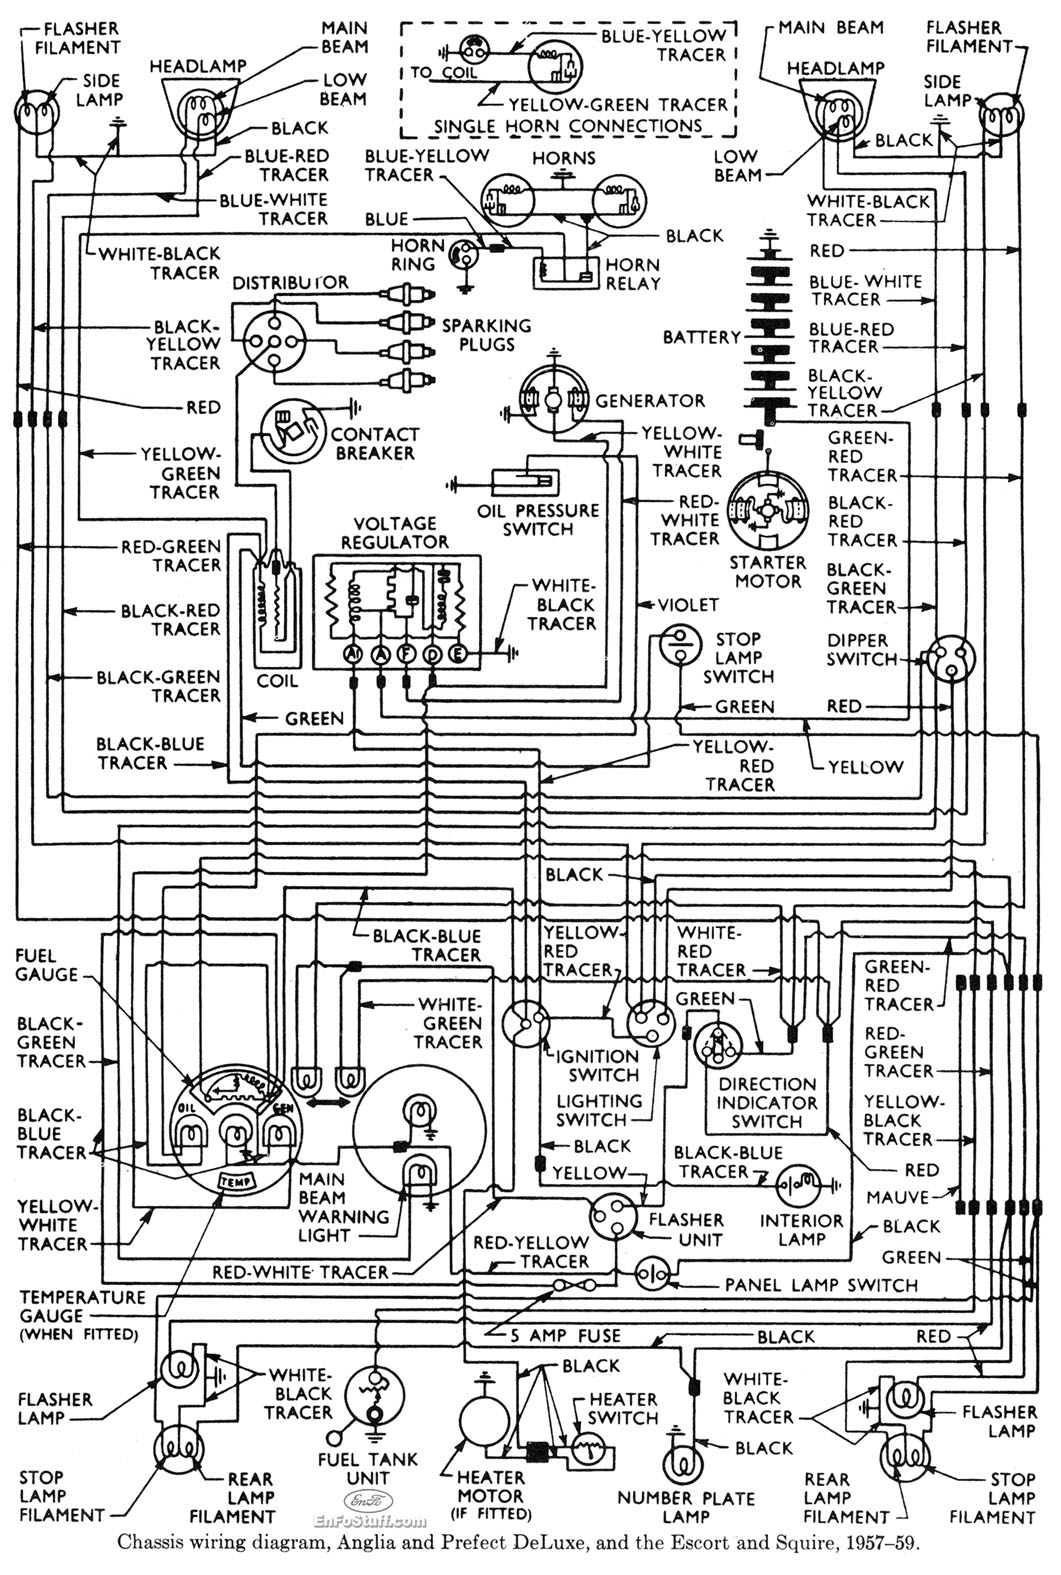 Par Car Gas Key Switch Wiring Diagram Trusted Diagrams 1957 Ford Ignition Club Ds All Kind Of U2022 3 Position